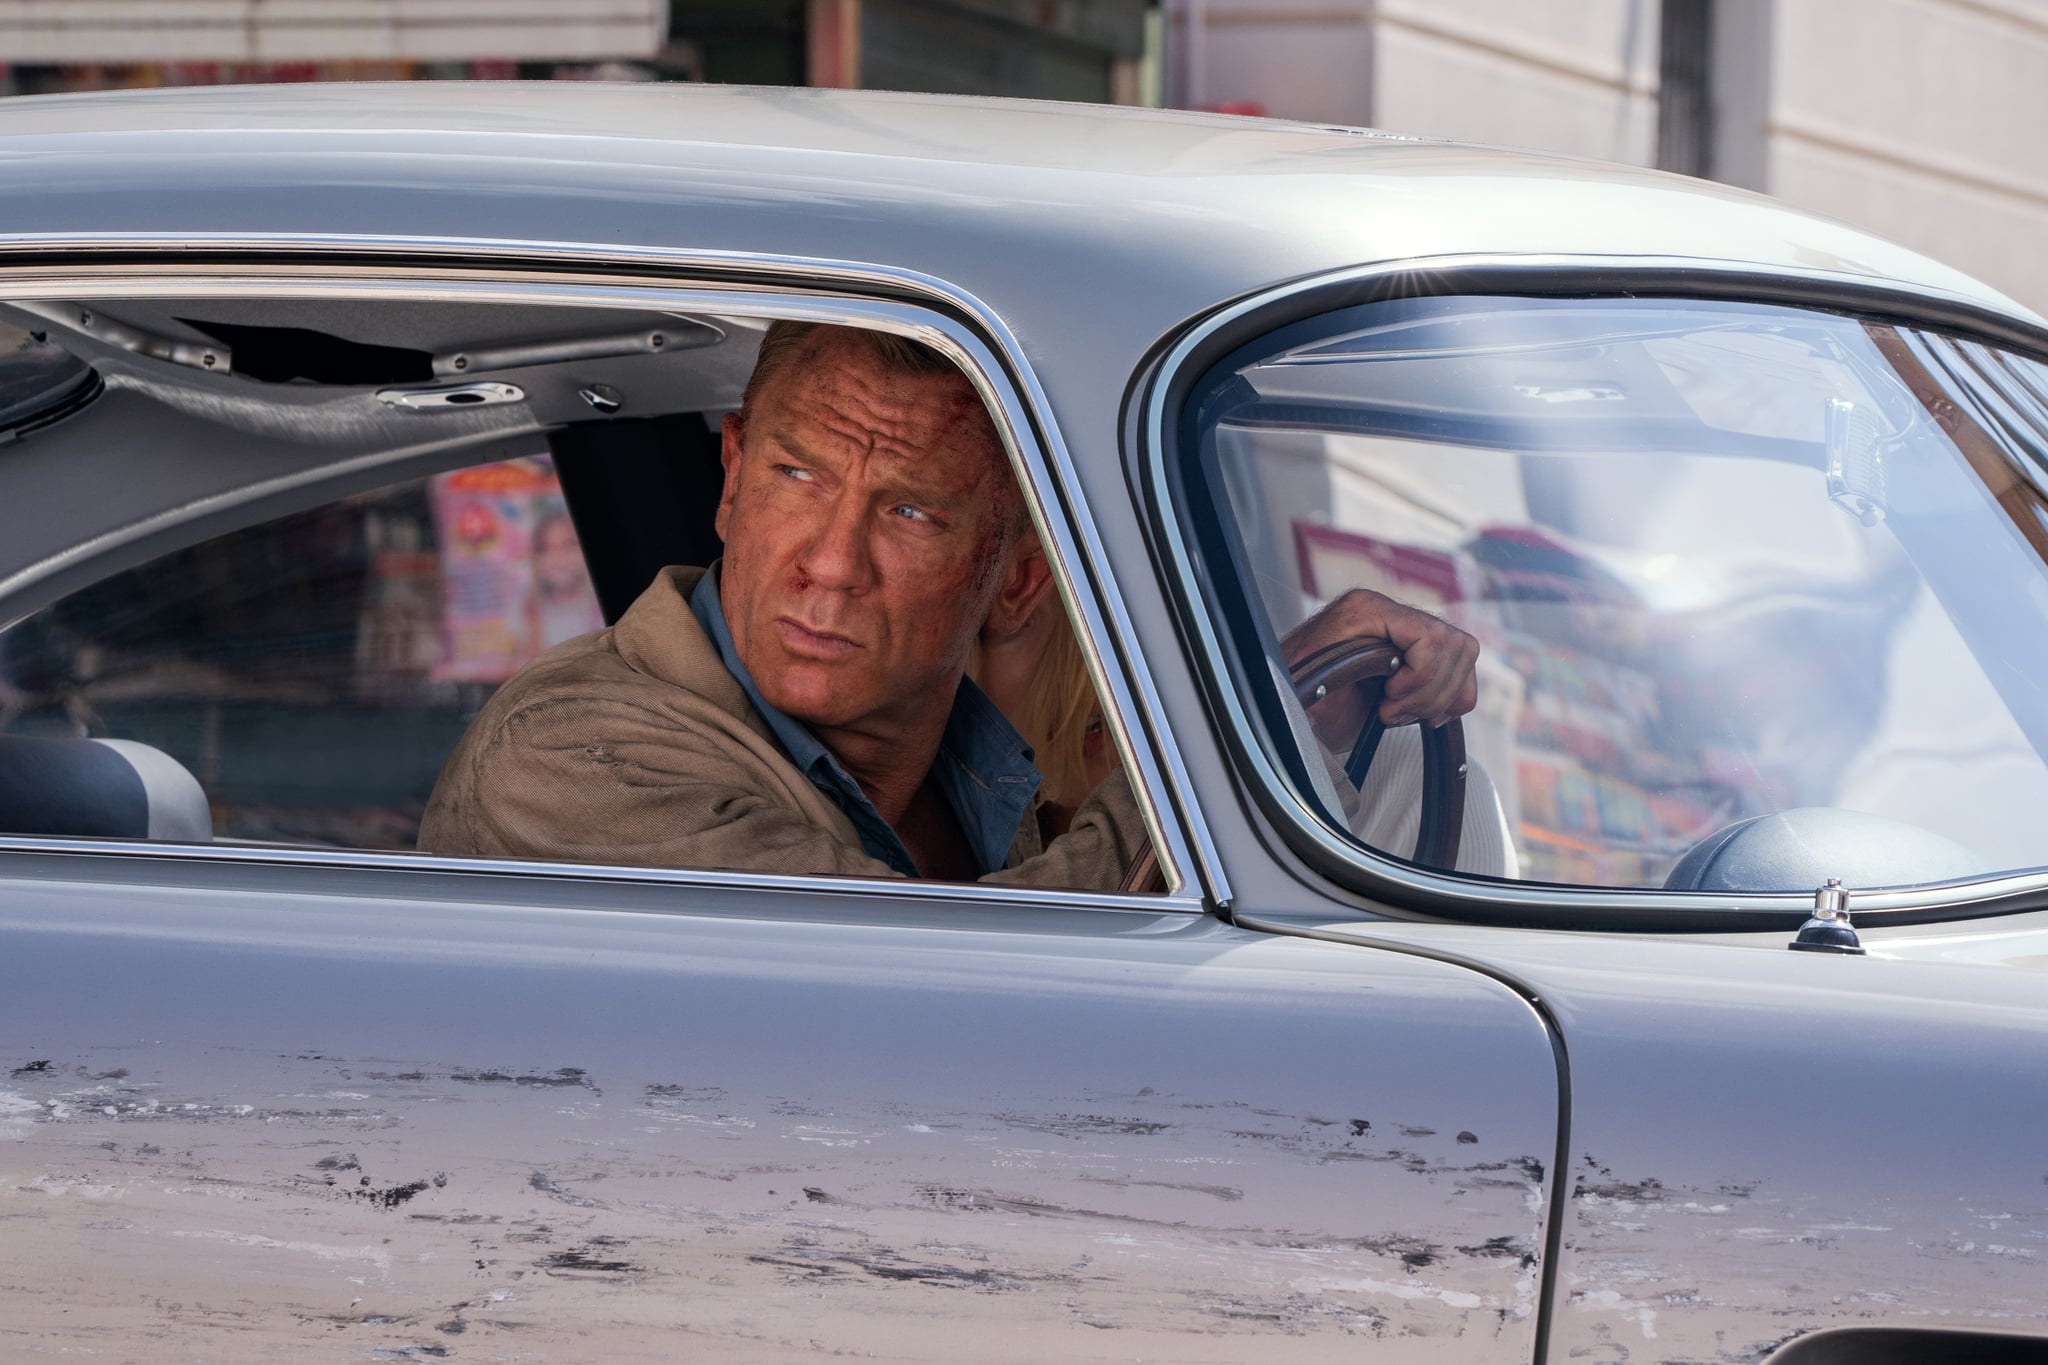 B25_31842_RC2James Bond (Daniel Craig) and Dr. Madeleine Swann (Léa Seydoux)drive through Matera, Italy in NO TIME TO DIEan EON Productions and Metro Goldwyn Mayer Studios filmCredit: Nicola Dove© 2020 DANJAQ, LLC AND MGM.  ALL RIGHTS RESERVED.